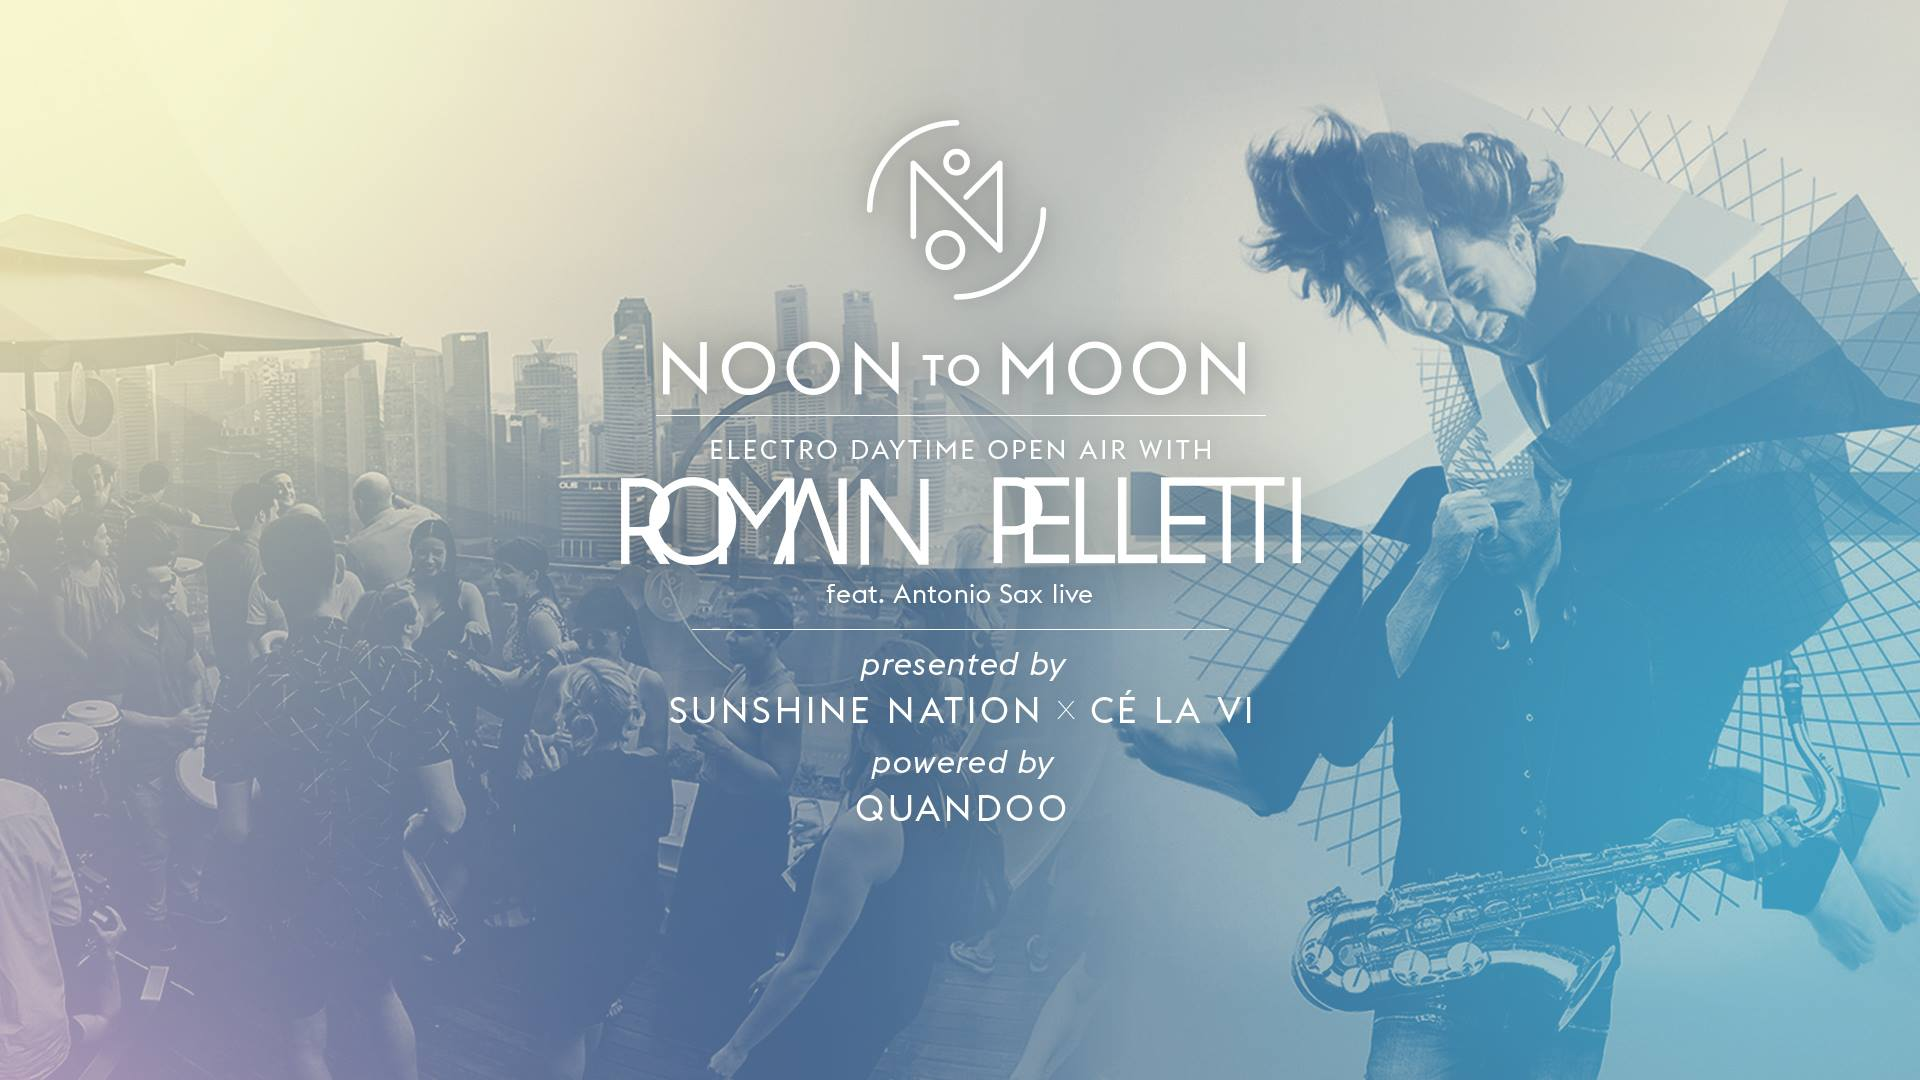 Noon to Moon, presented by Sunshine Nation, 3 Dec 2016